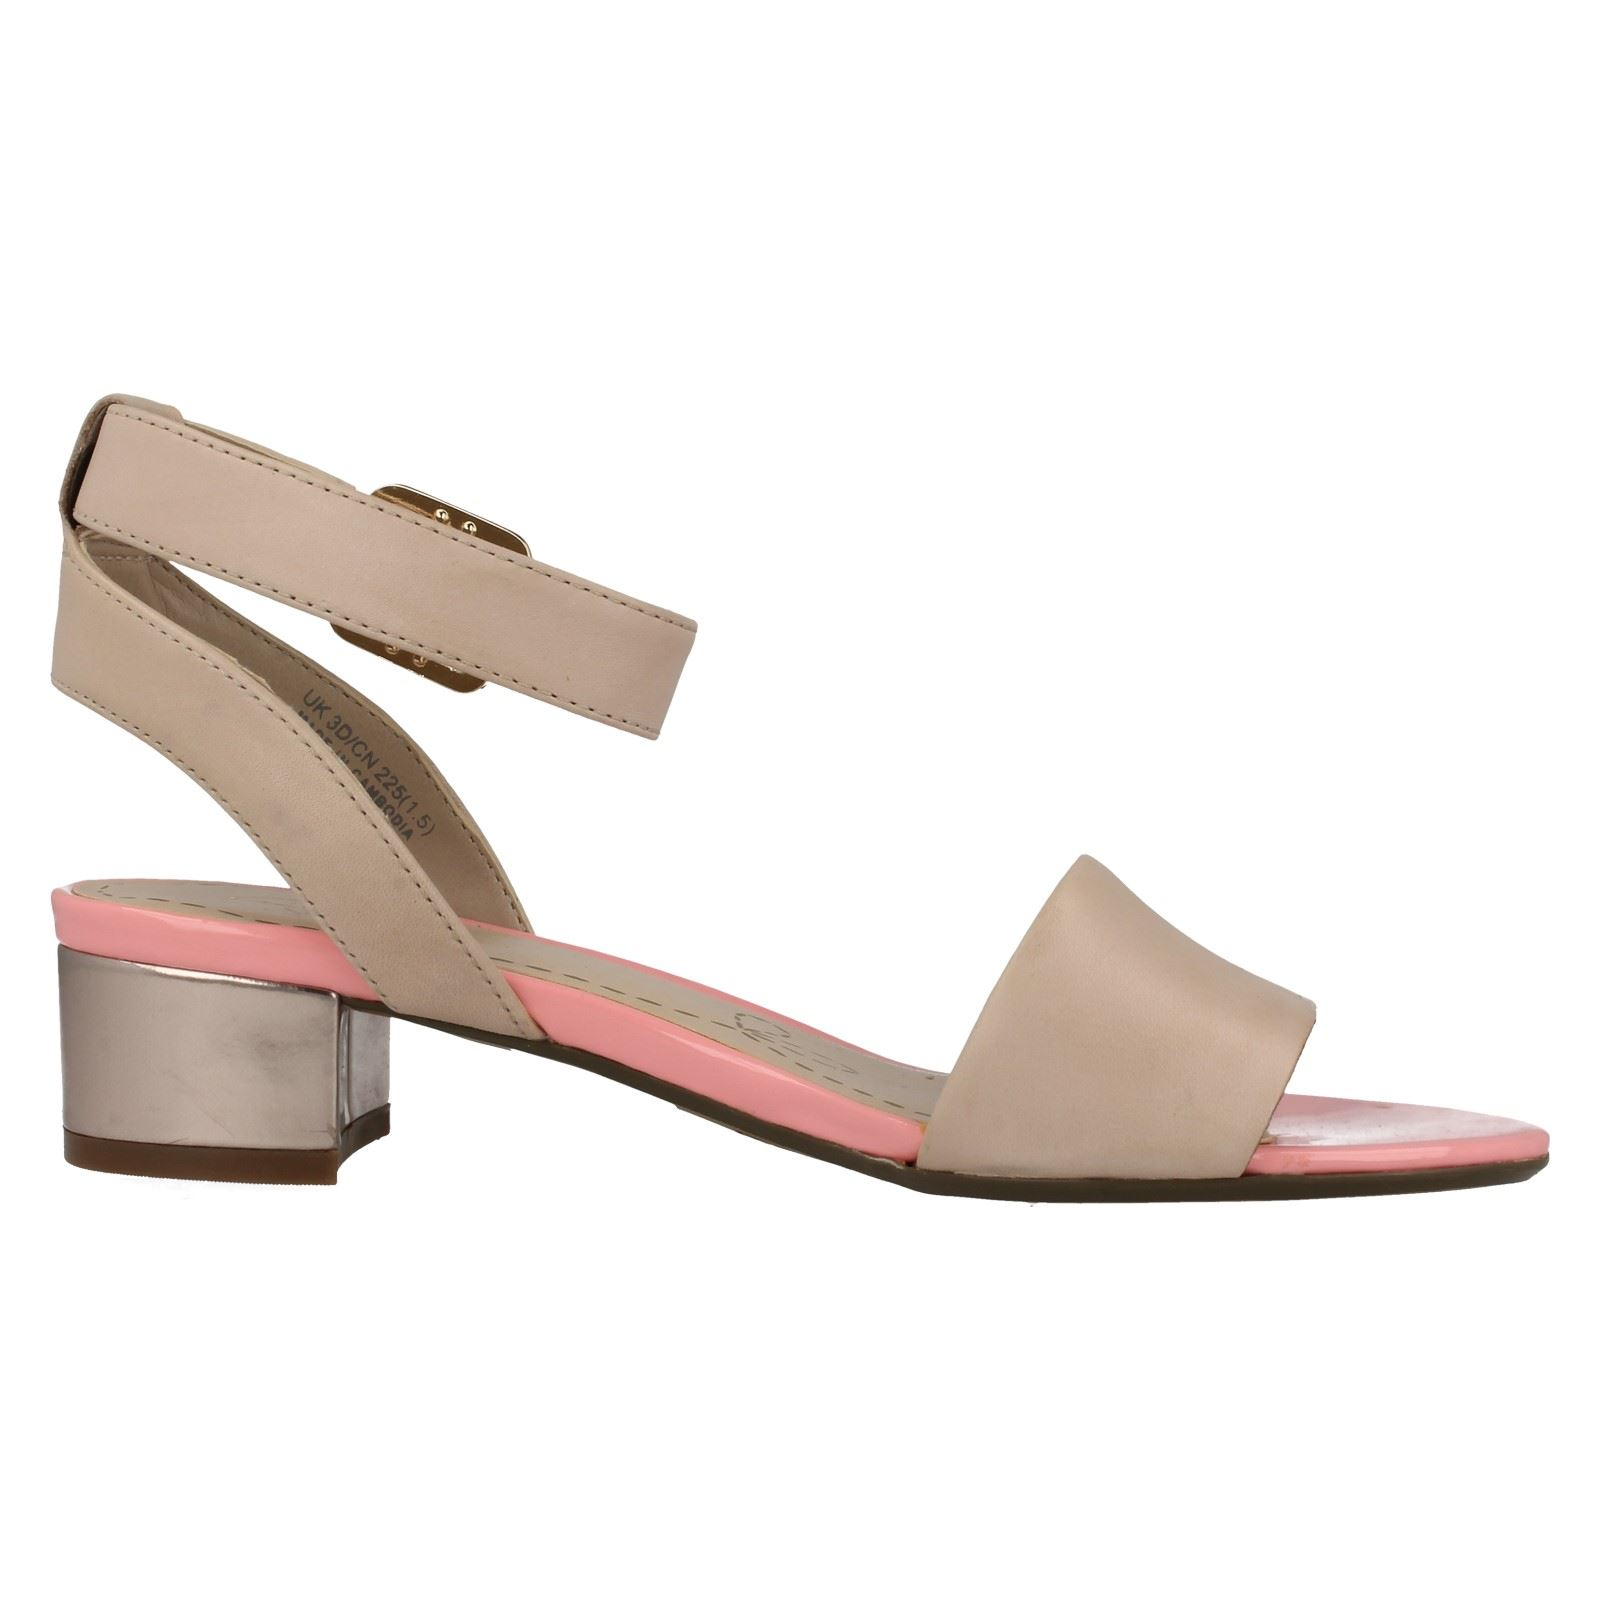 7d5704237134 Ladies-Clarks-Sandals-039-Sharna-Balcony-039 thumbnail 5